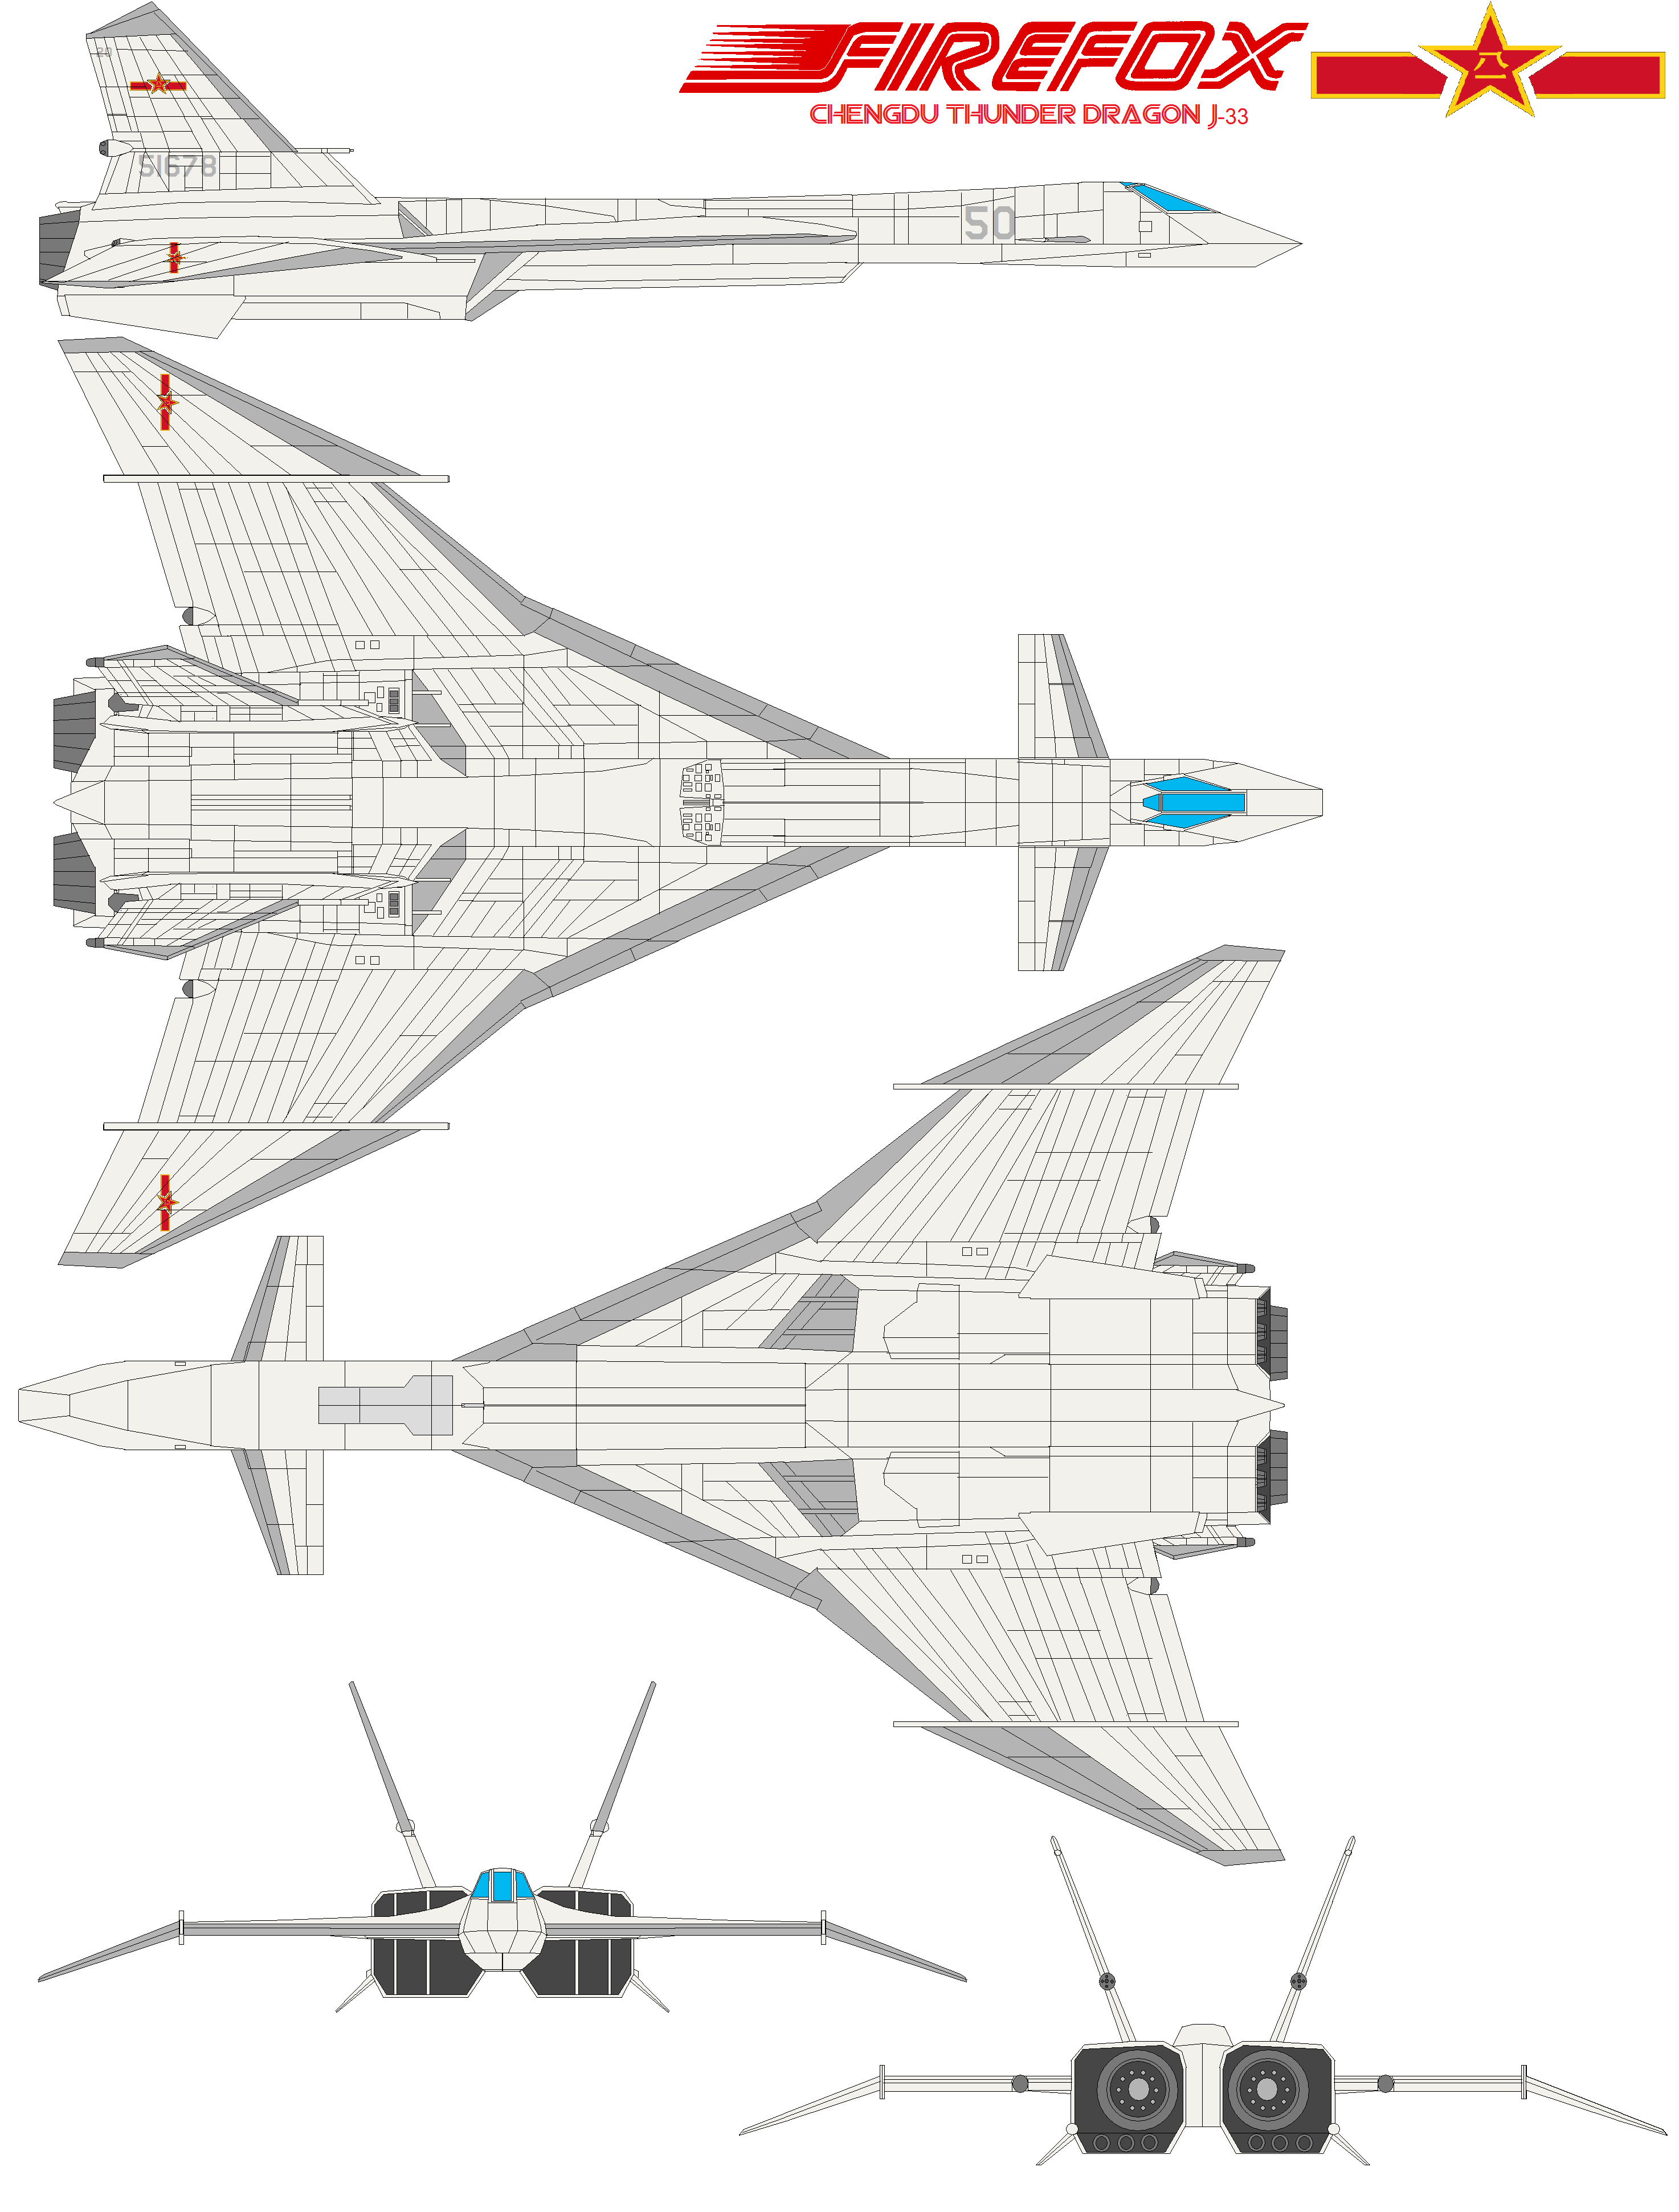 Firefox j-33 Thunder Dragon by bagera3005